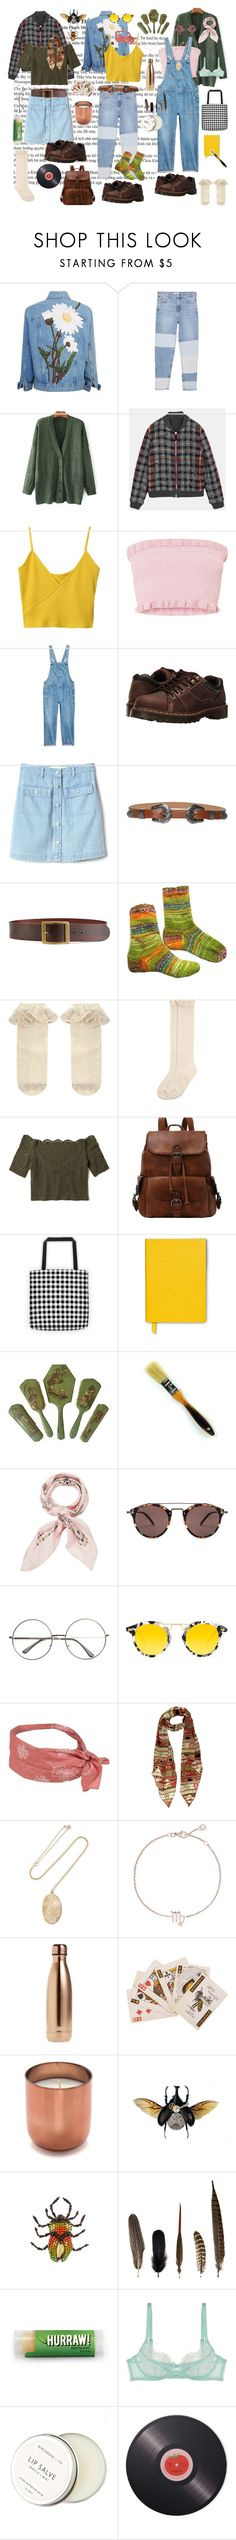 """summer outfits"" by sydneybrunette on Polyvore featuring MANGO, Dr. Martens, Gap, Frame, Monsoon, Hollister Co., Smythson, Manipuri, Oliver Peoples and Krewe"